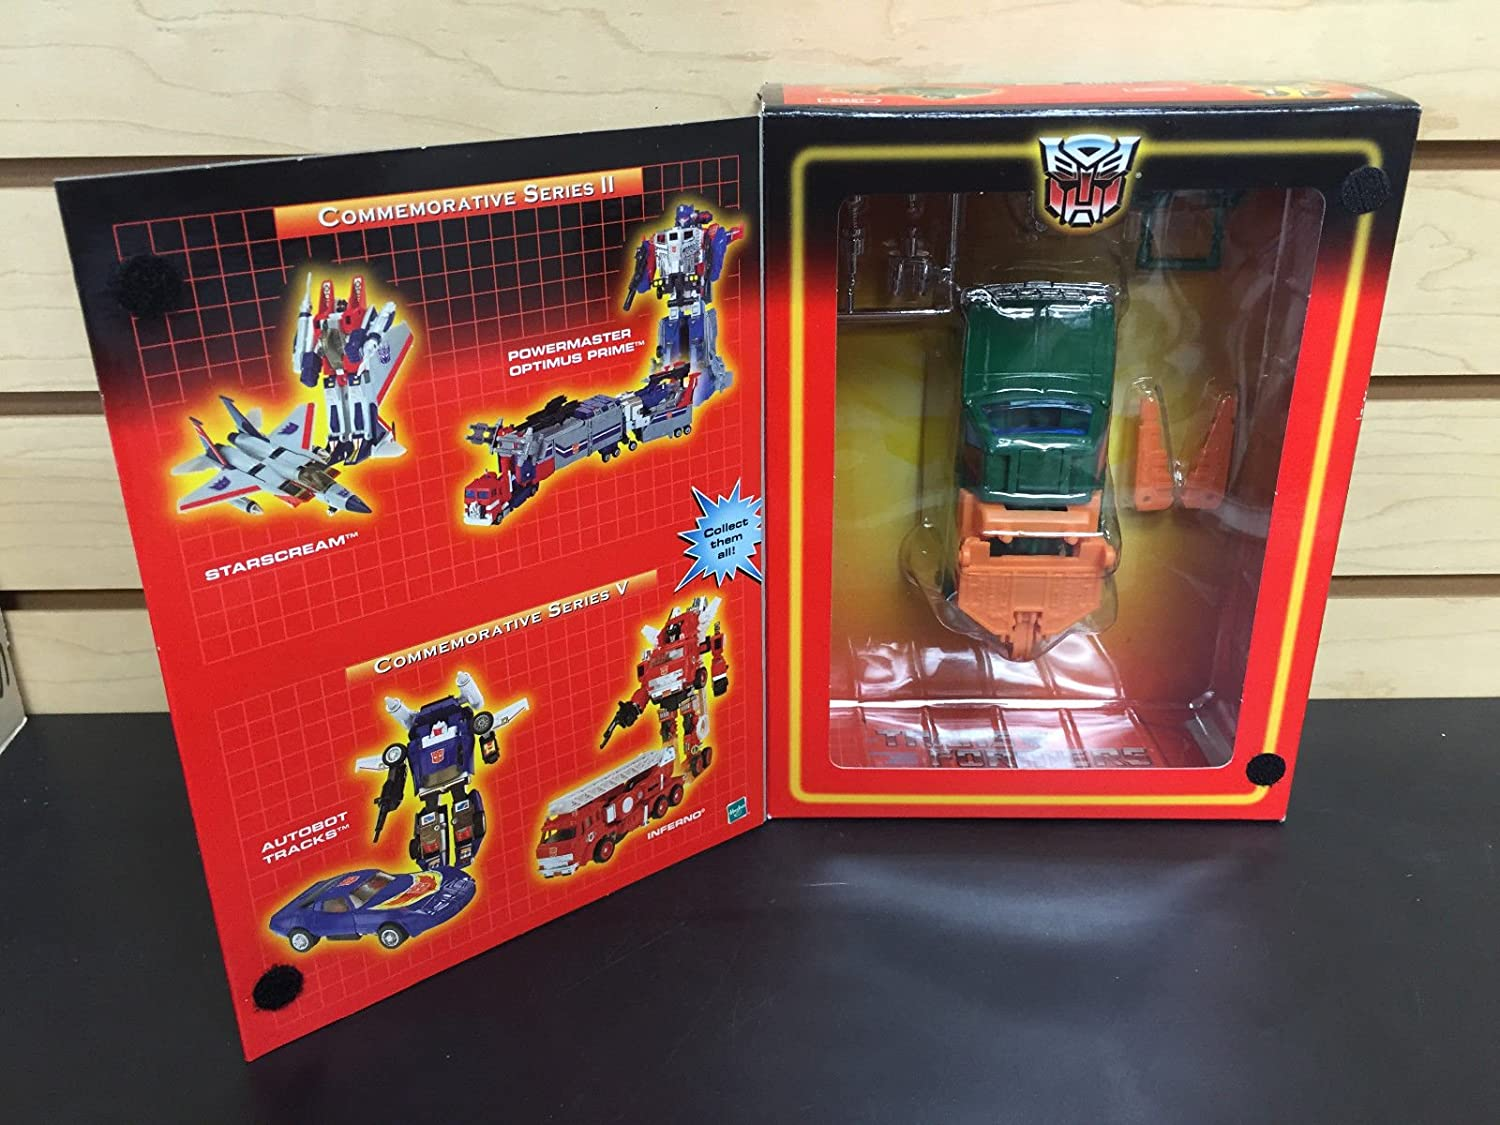 HOIST Transformers Autobot Hasbro COMMEMORATIVE SERIES V G1 RE-ISSUE